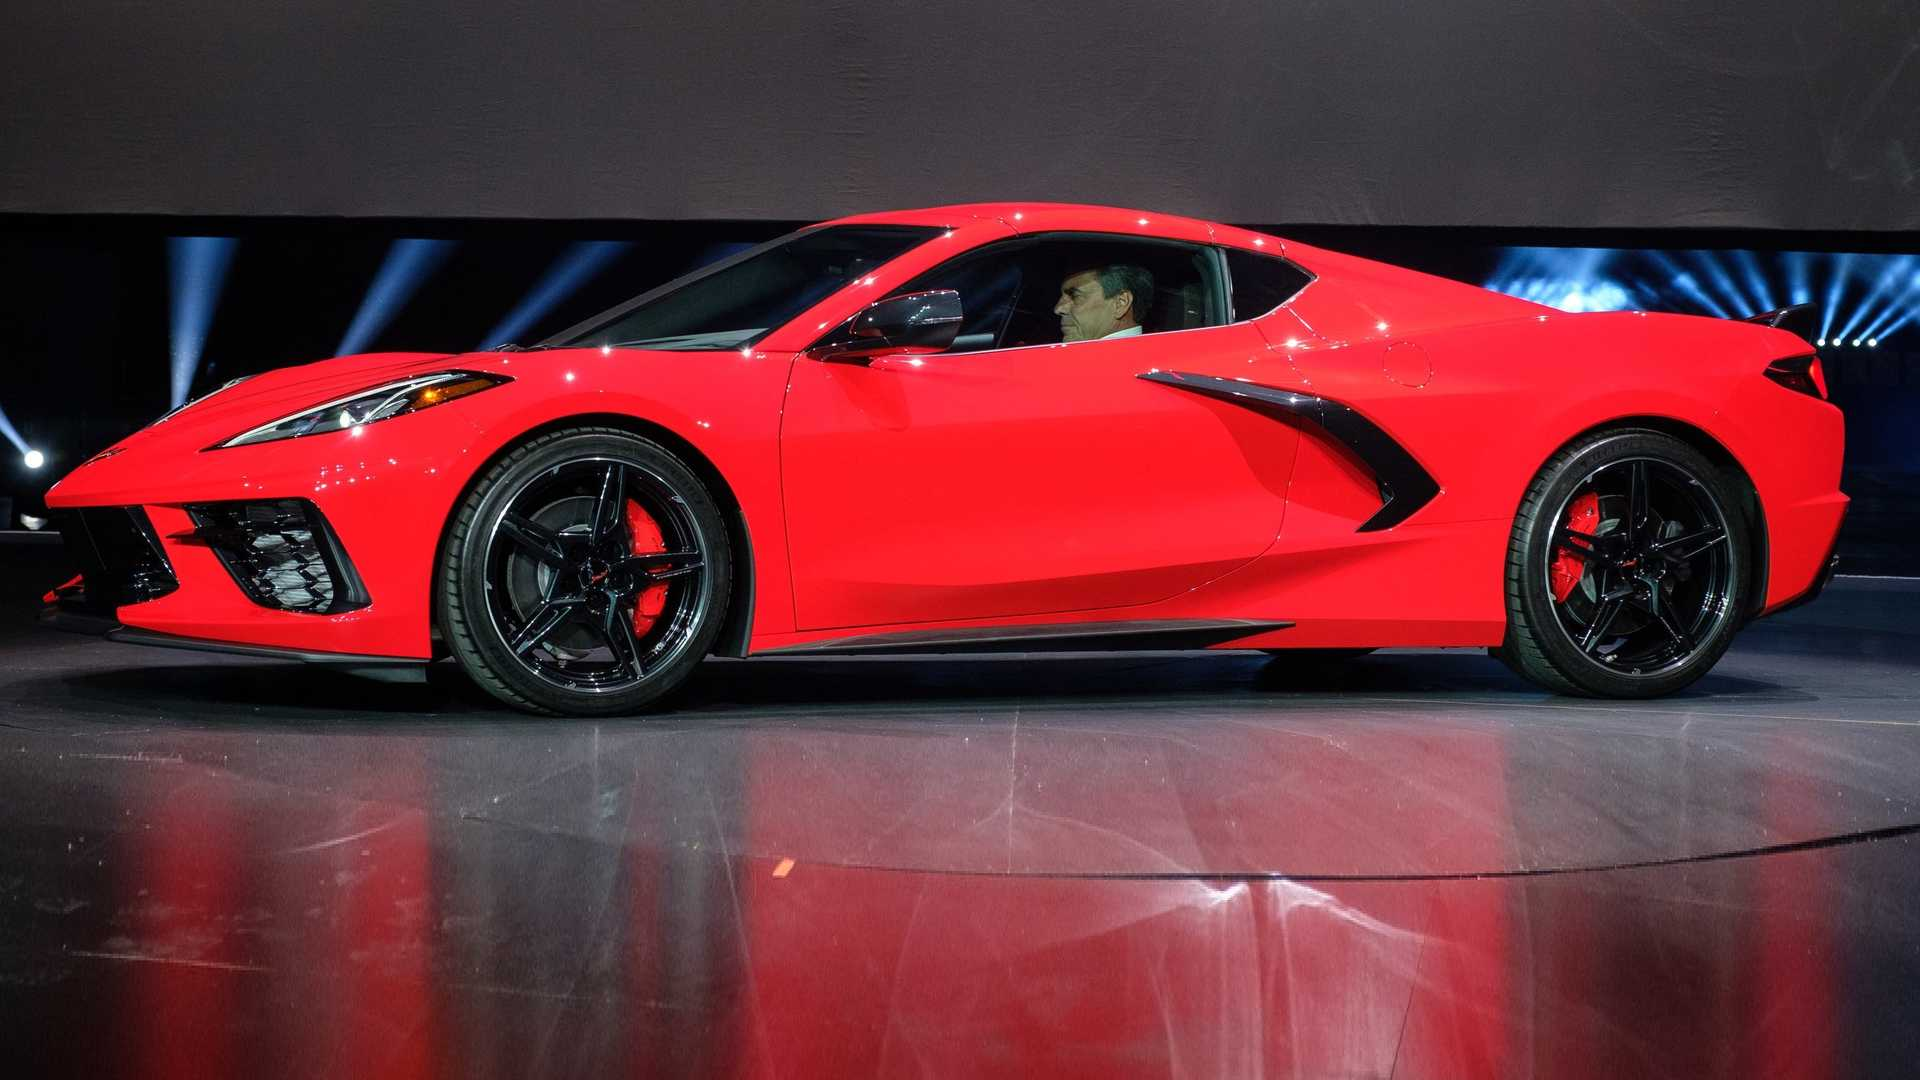 Oficial: nuevo Chevrolet Corvette C8 Stingray